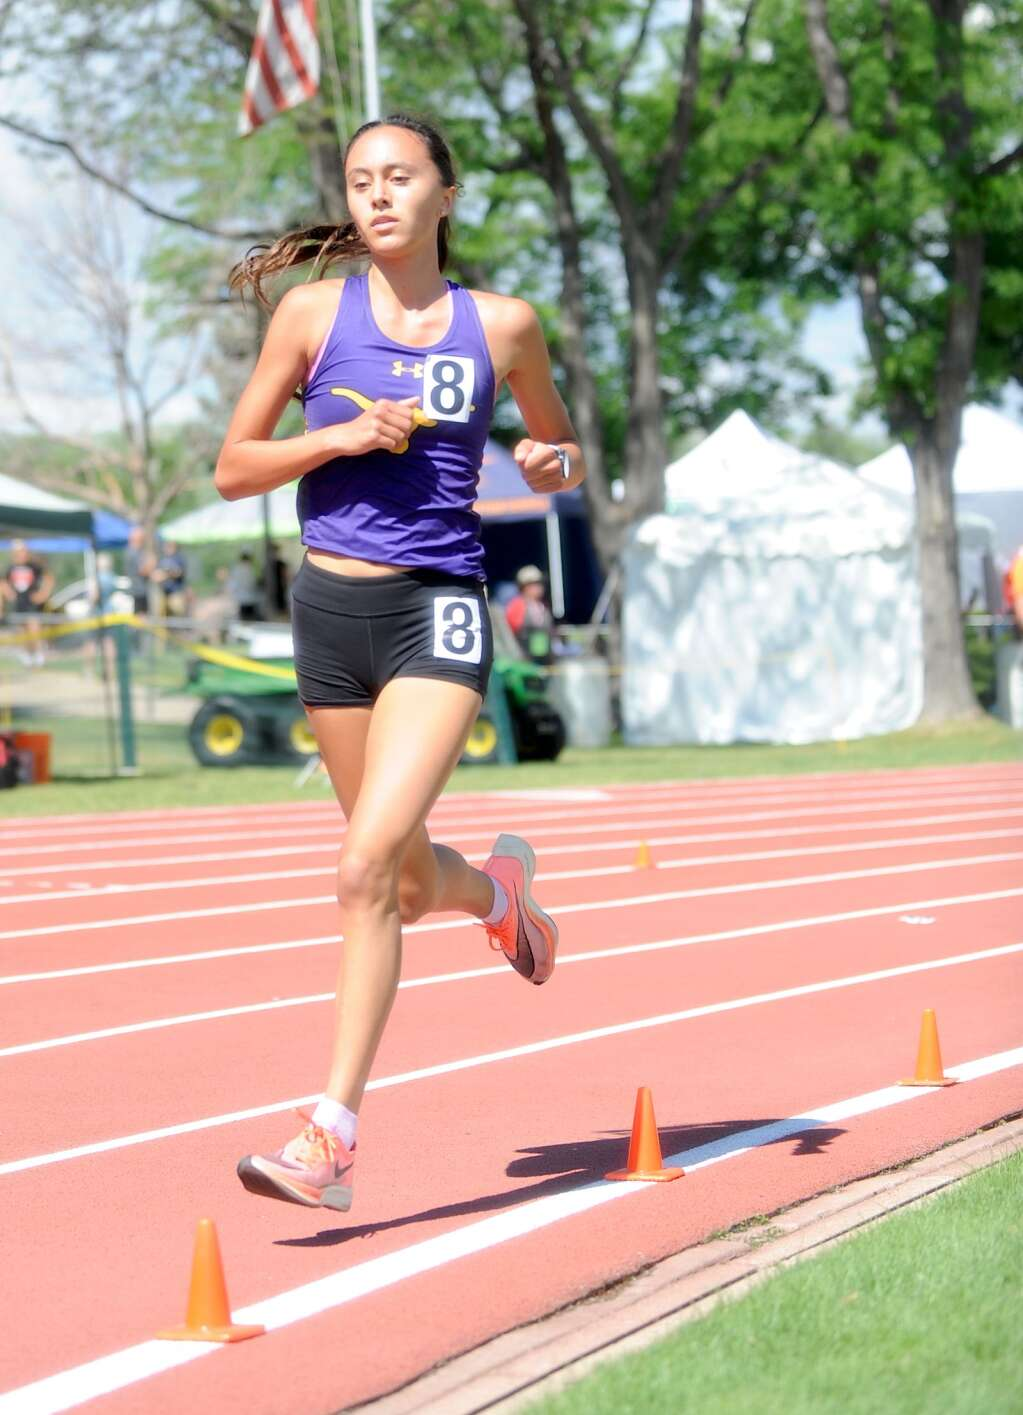 Basalt High School sophomore Ava Lane competes in the Class 3A girls' 3,200-meter run on Friday, June 25, 2021, at the state championship meet in Lakewood. Photo by Shelby Reardon/Steamboat Pilot & Today.